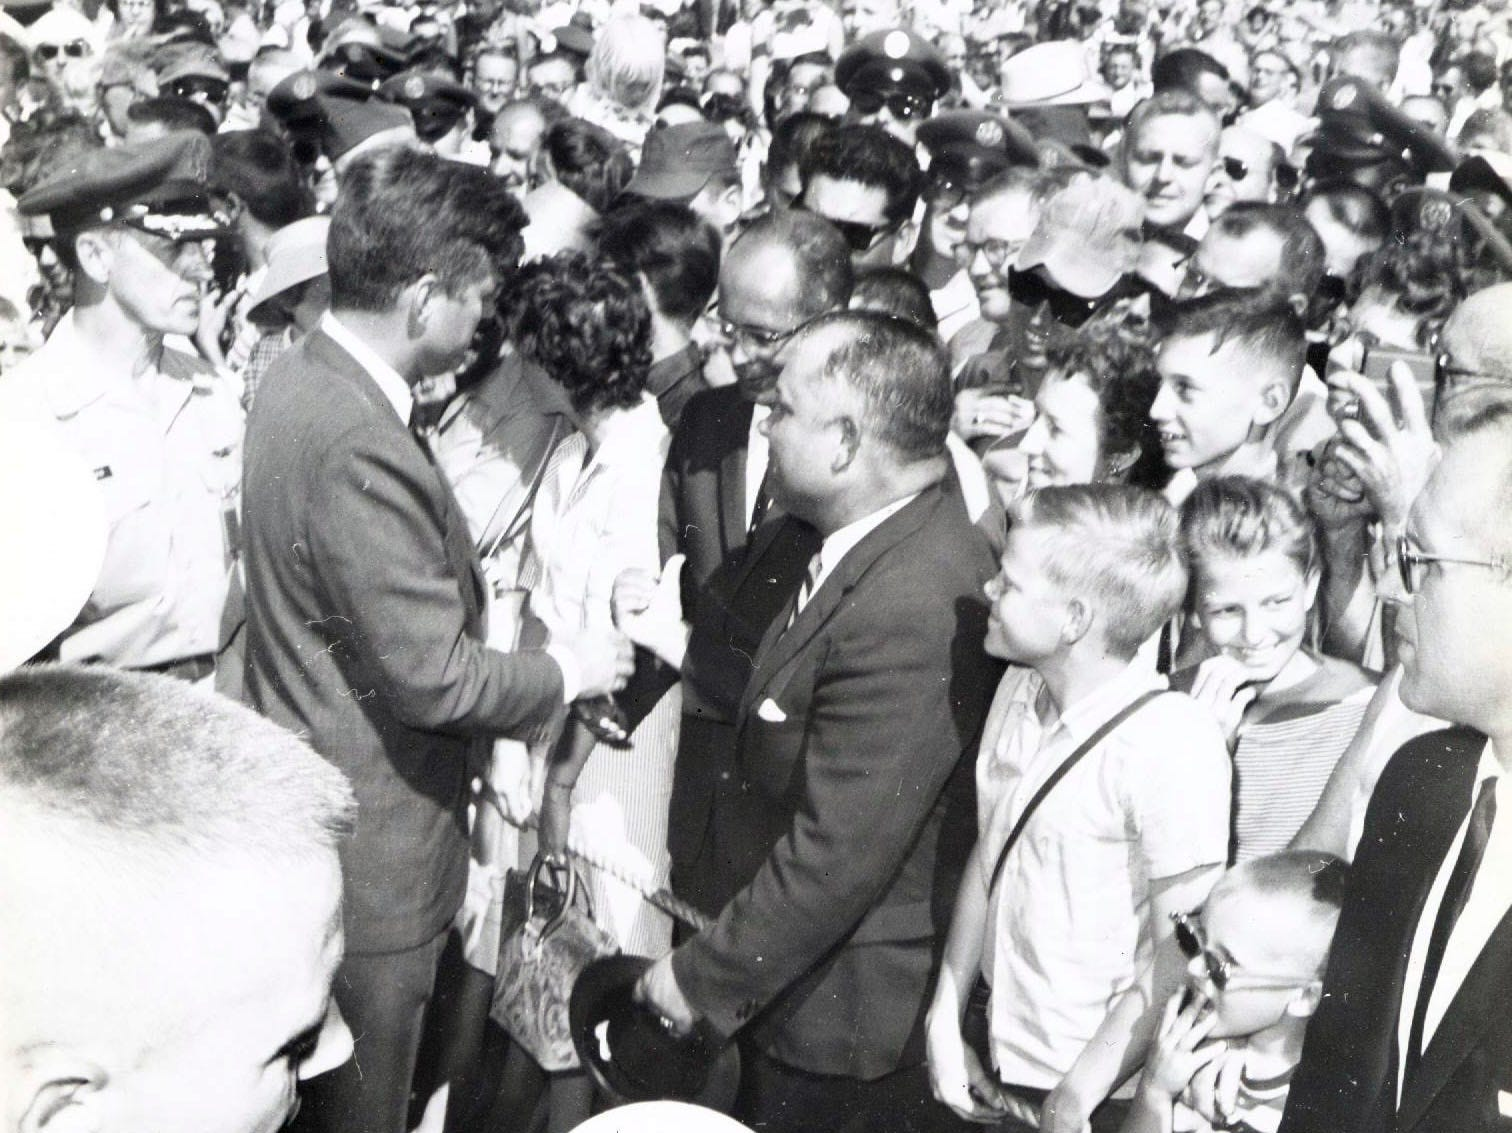 John F. Kennedy visits El Paso. Not sure if this is the 1960 or the 1963 vist.